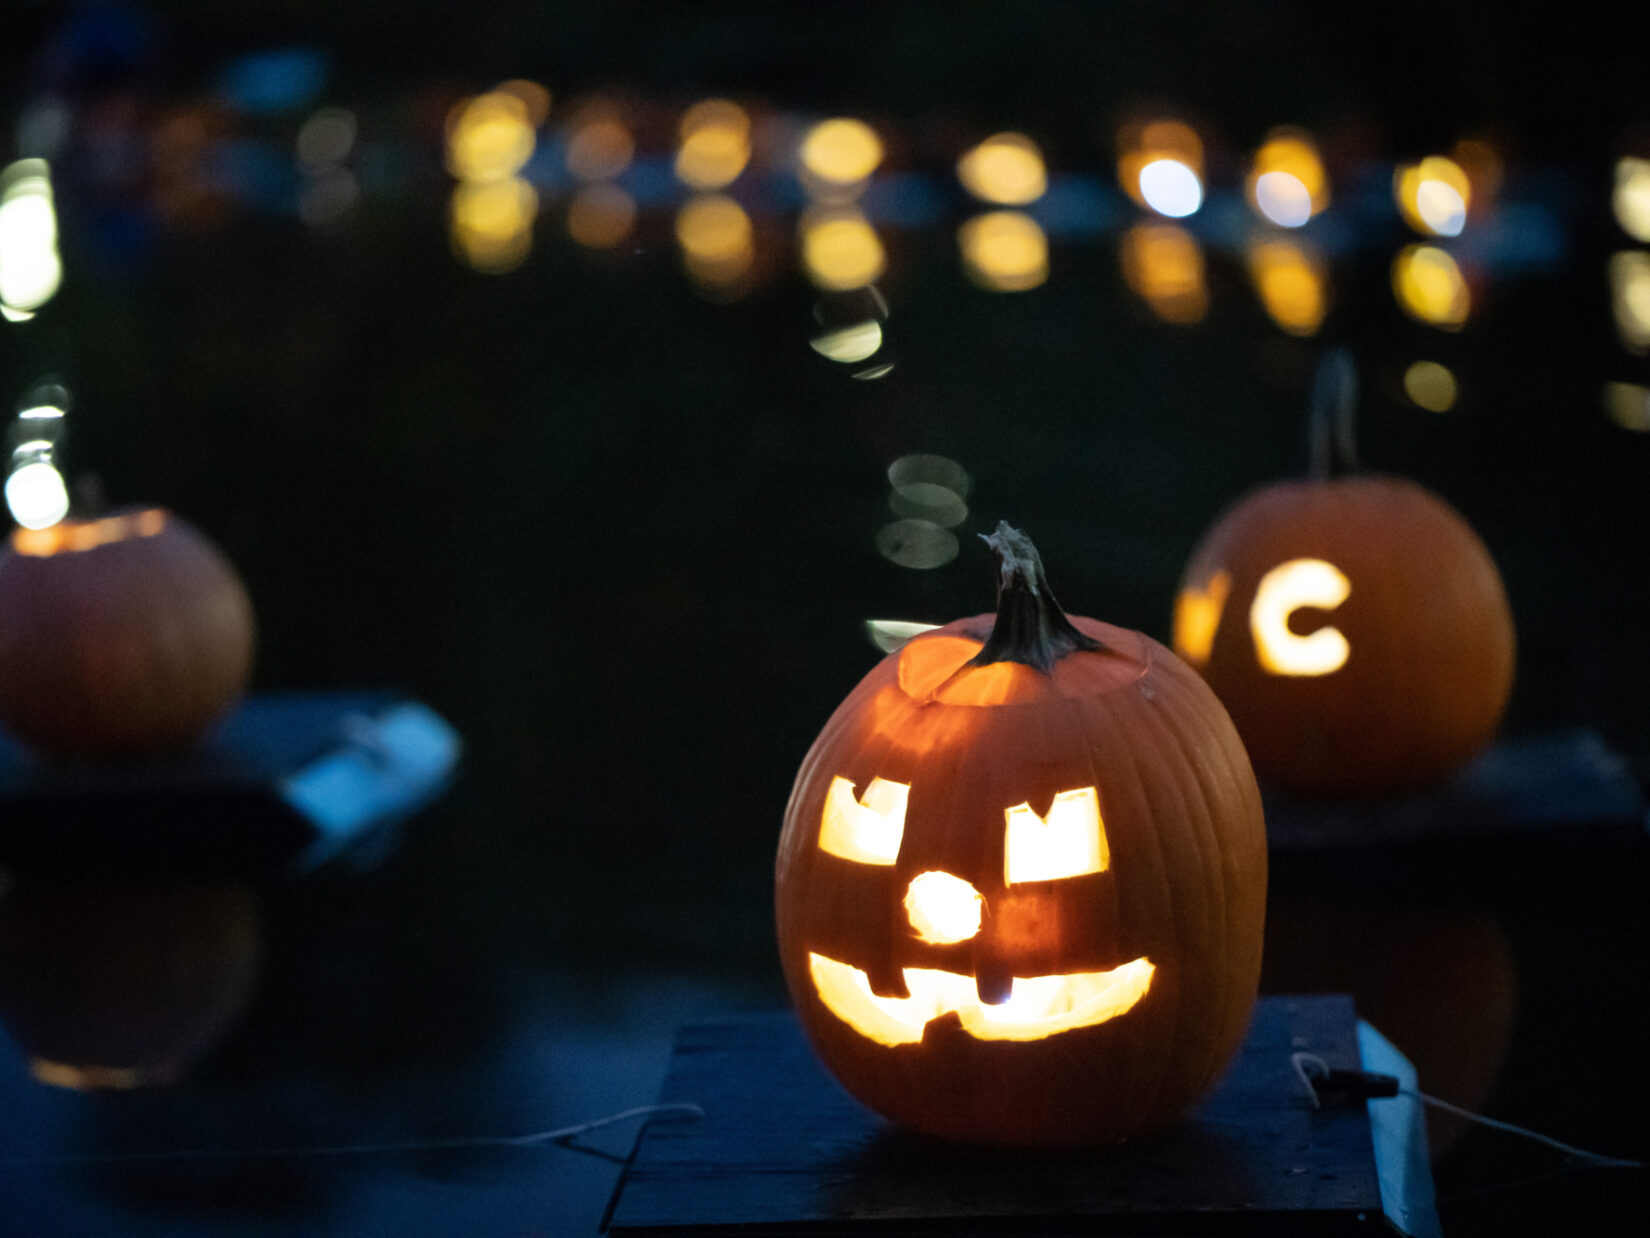 Pumpkins, lit from within, floating on the Harlem Meer at night